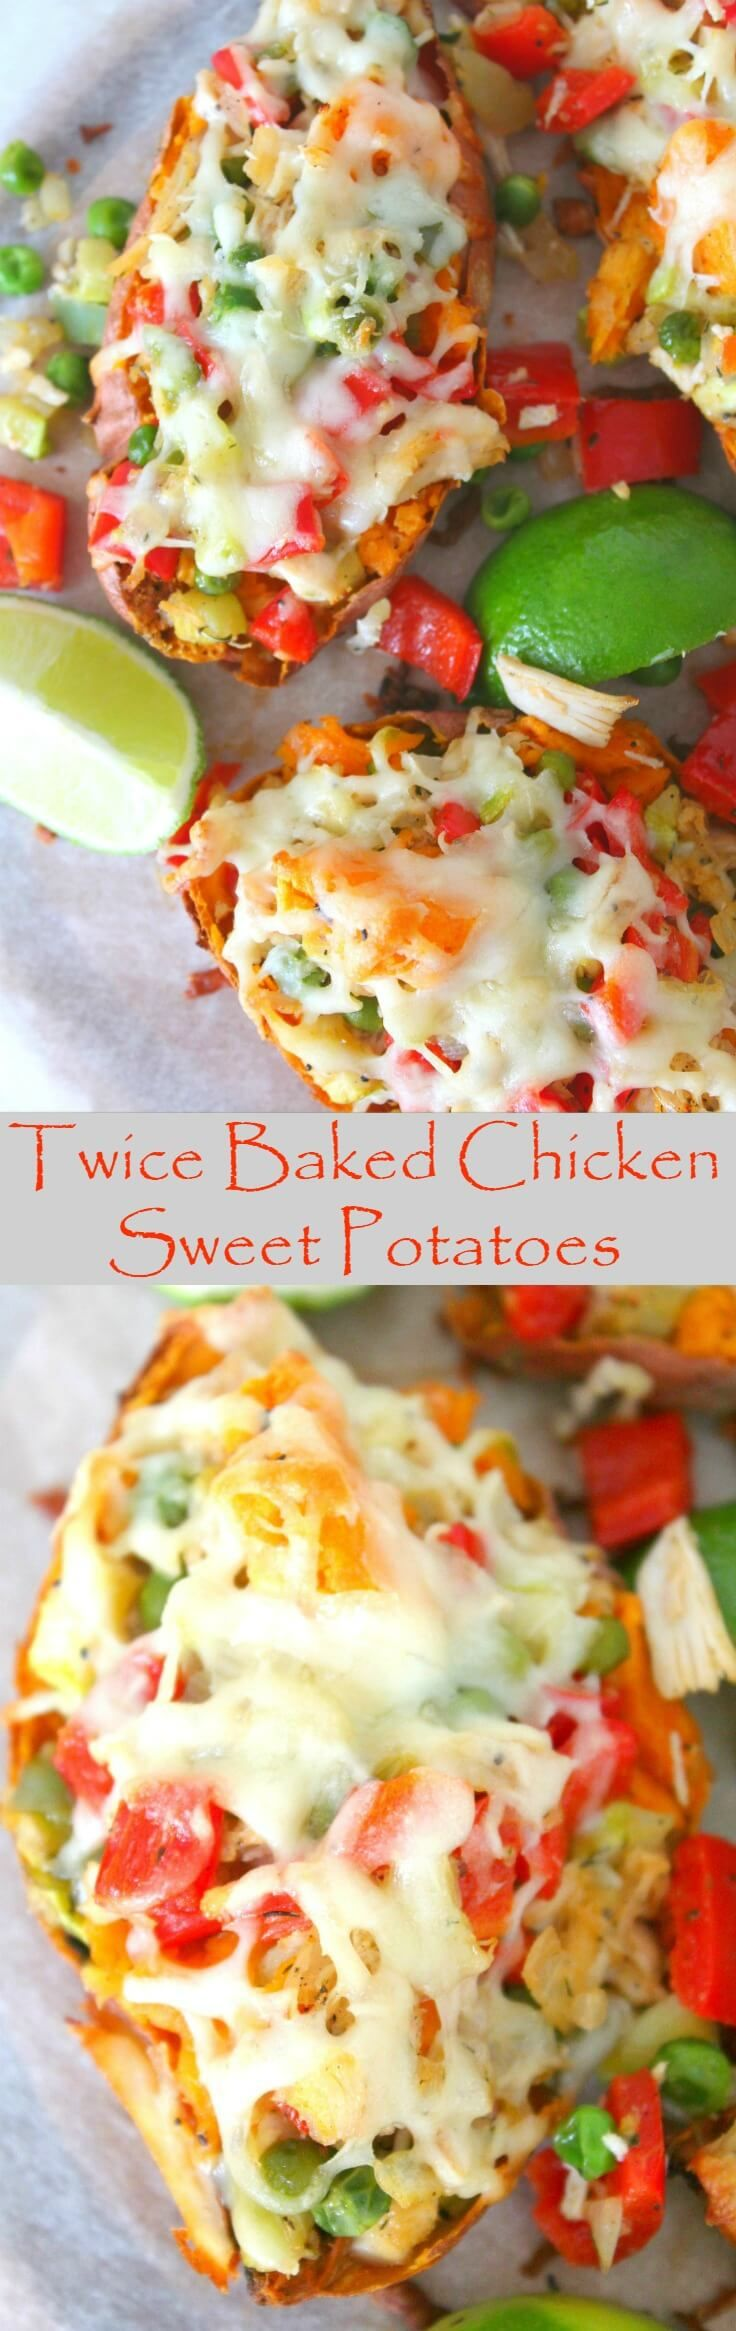 TWICE BAKED CHICKEN VEGGIE SWEET POTATOES - If you're looking for amazing, mouthwatering, comfort food that's also healthy these twice baked chicken sweet potatoes are your best bet!